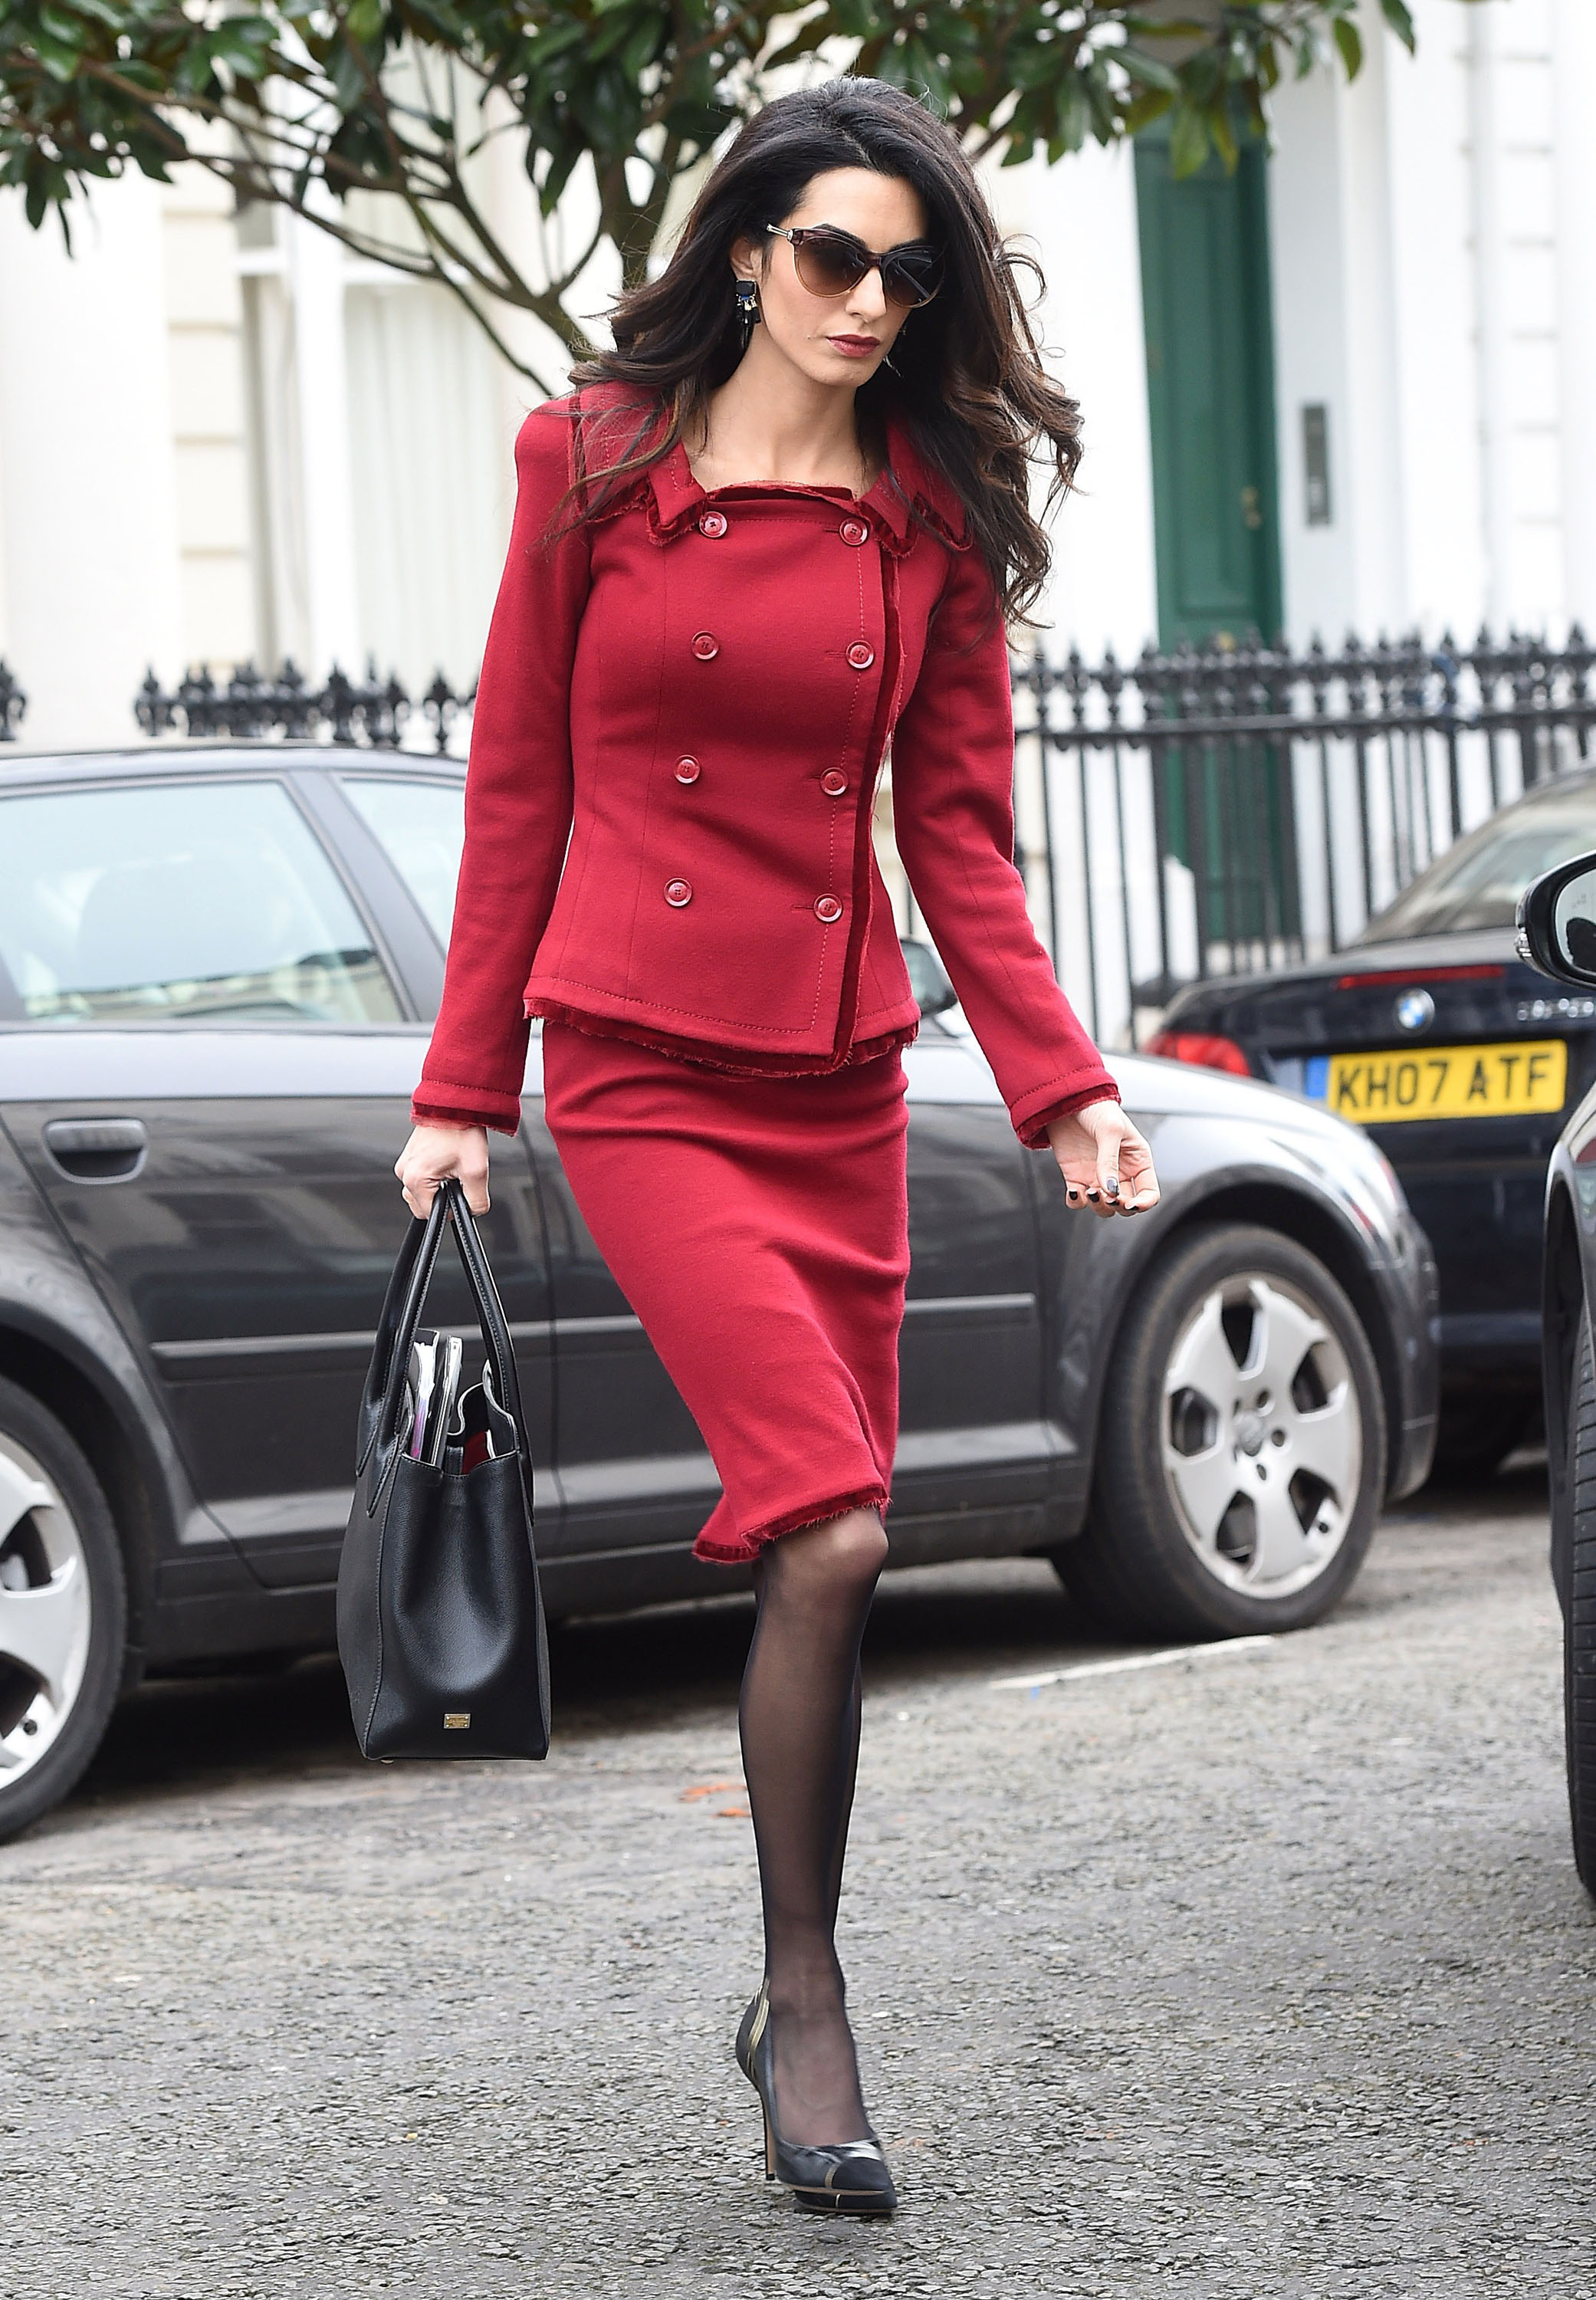 Amal Clooney's Red Power Suit Is Justice Incarnate